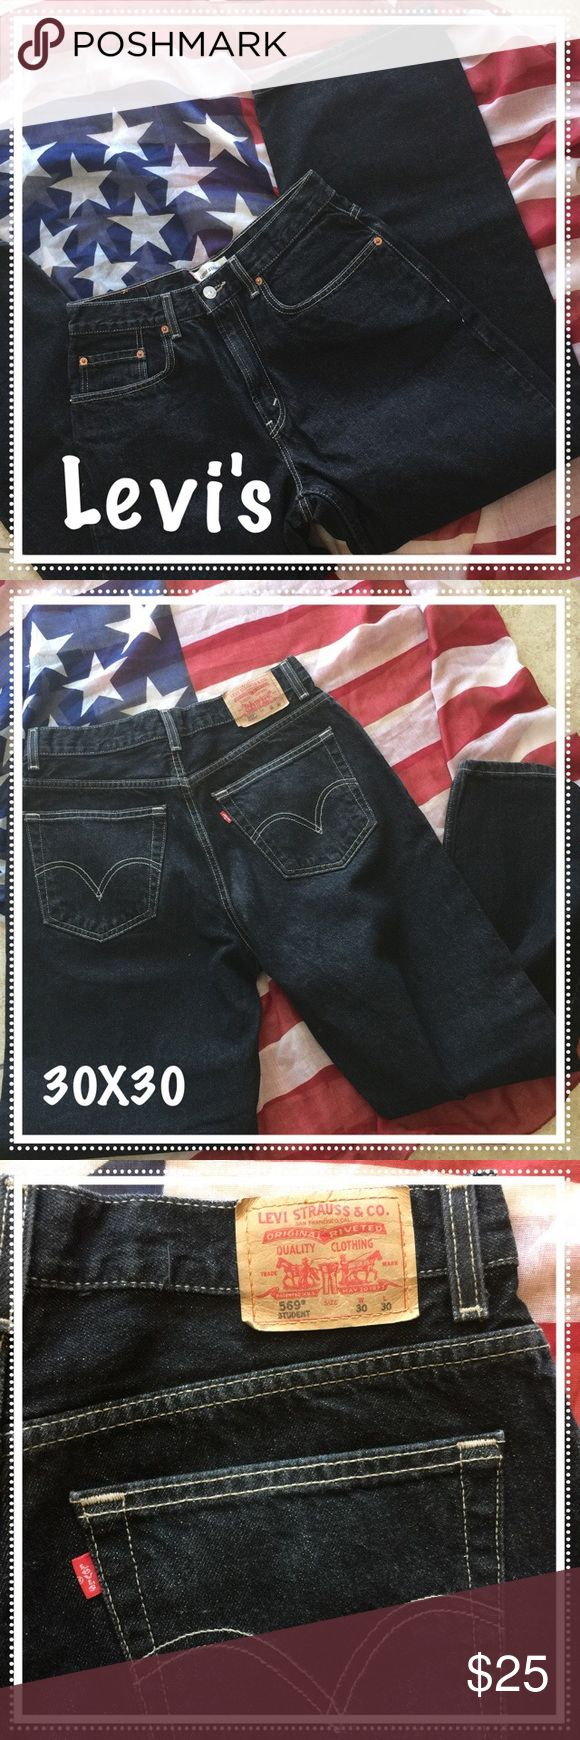 💥Sale💥Men's Levi's 569 Loose Straight 30x30 #073 Men's Levi's 569 - 30x30. Loose and straight. Good condition. Levi's Jeans Straight